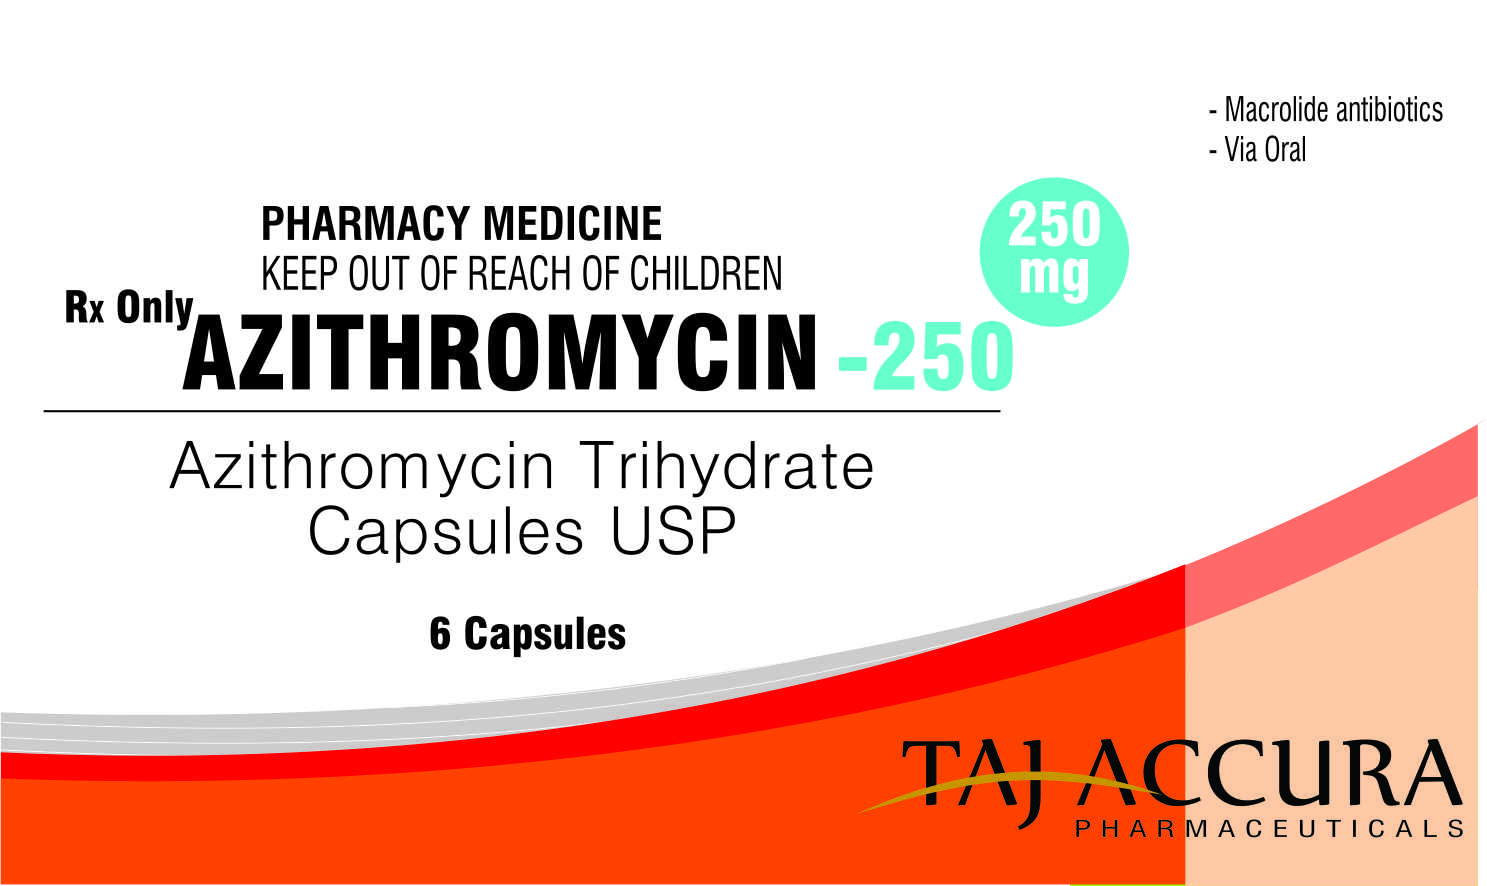 AZITHROMYCIN 250/500 MG - ORAL, Azithromycin 250 mg film-coated tablet